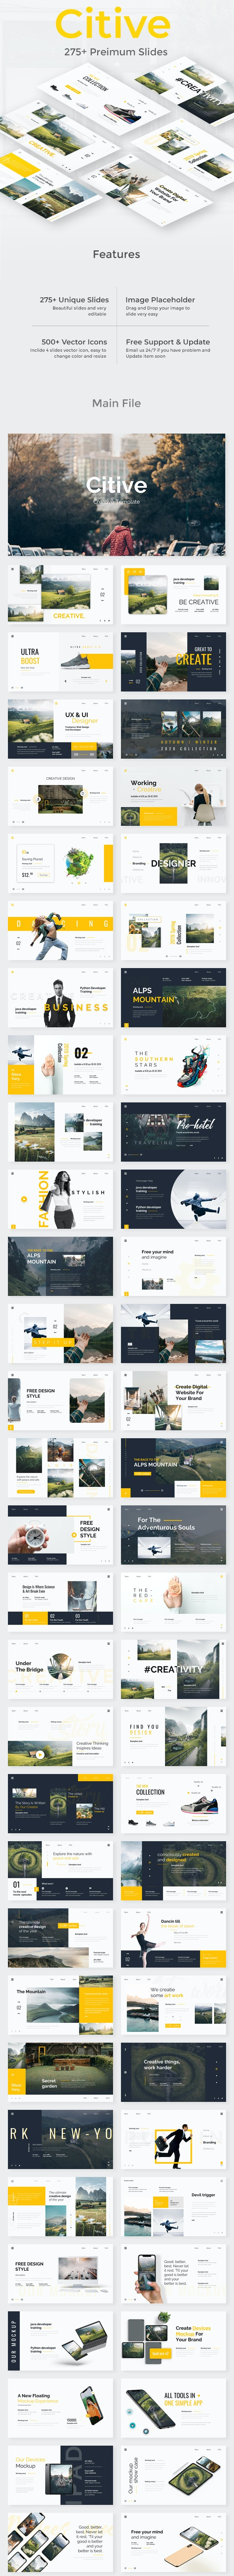 Citive Creative Design Powerpoint Template - Creative PowerPoint Templates